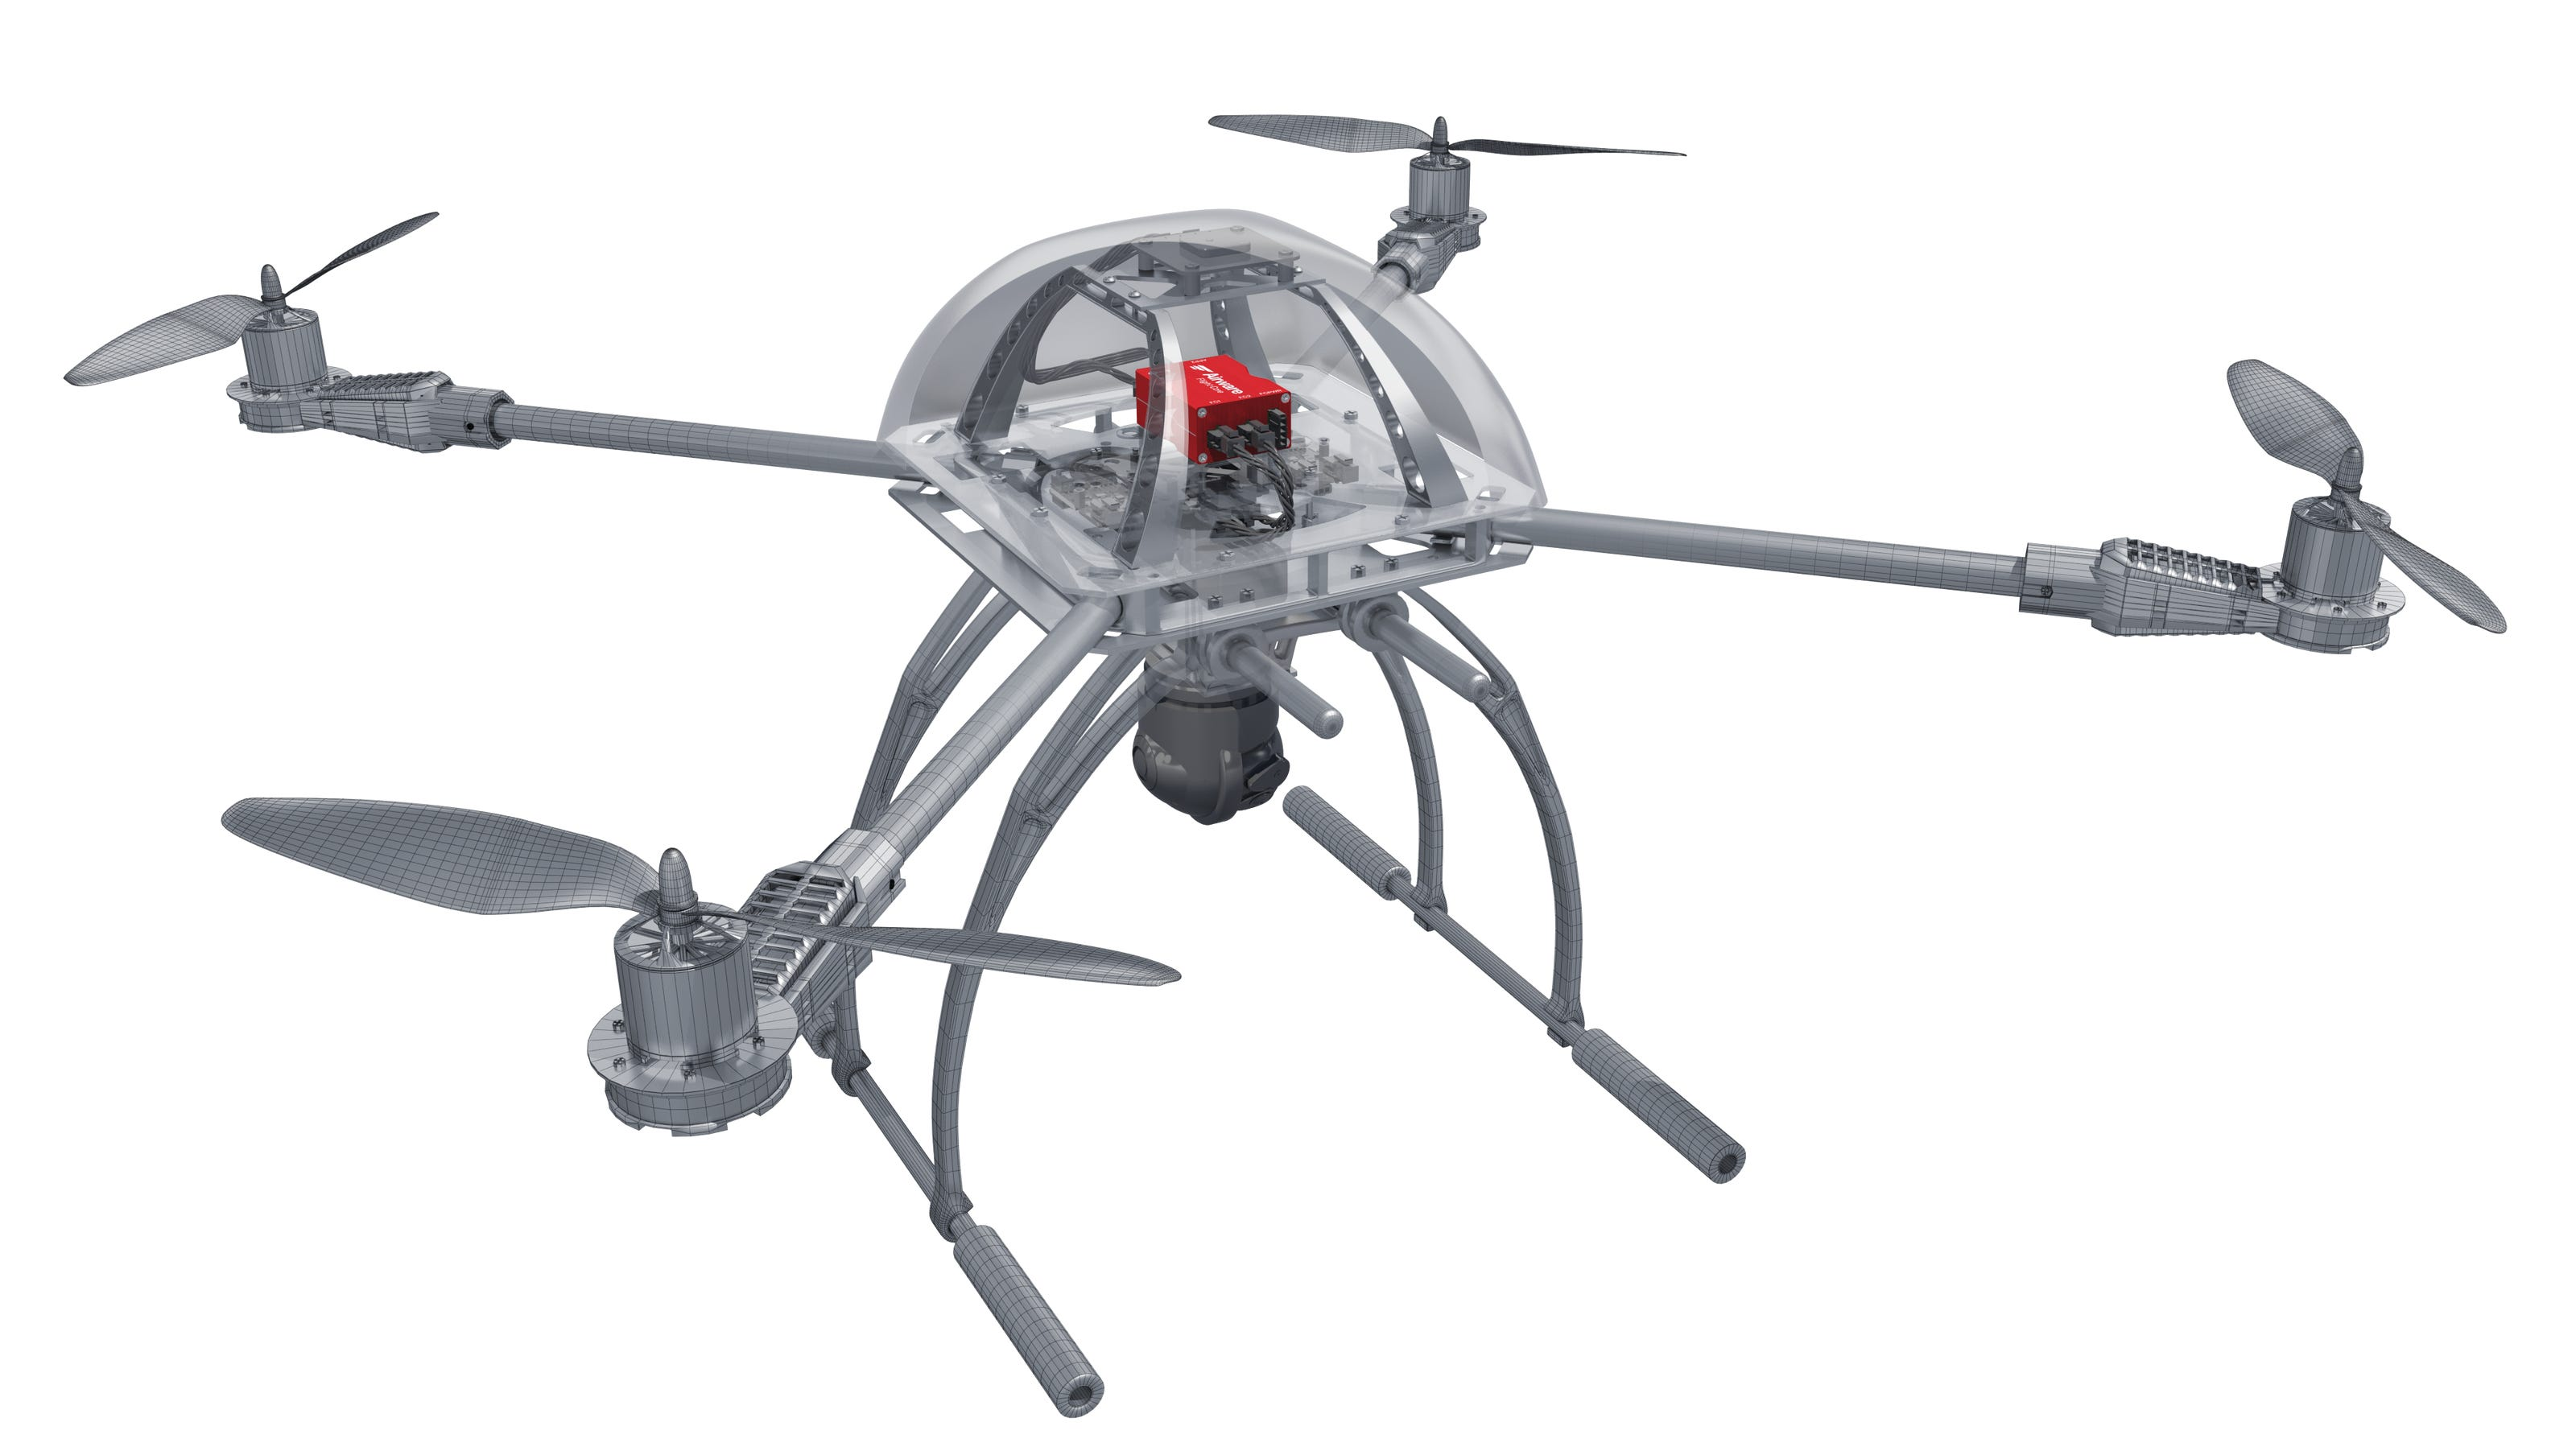 635647152955048486-airware-powered-quadrotor-model-cam-01